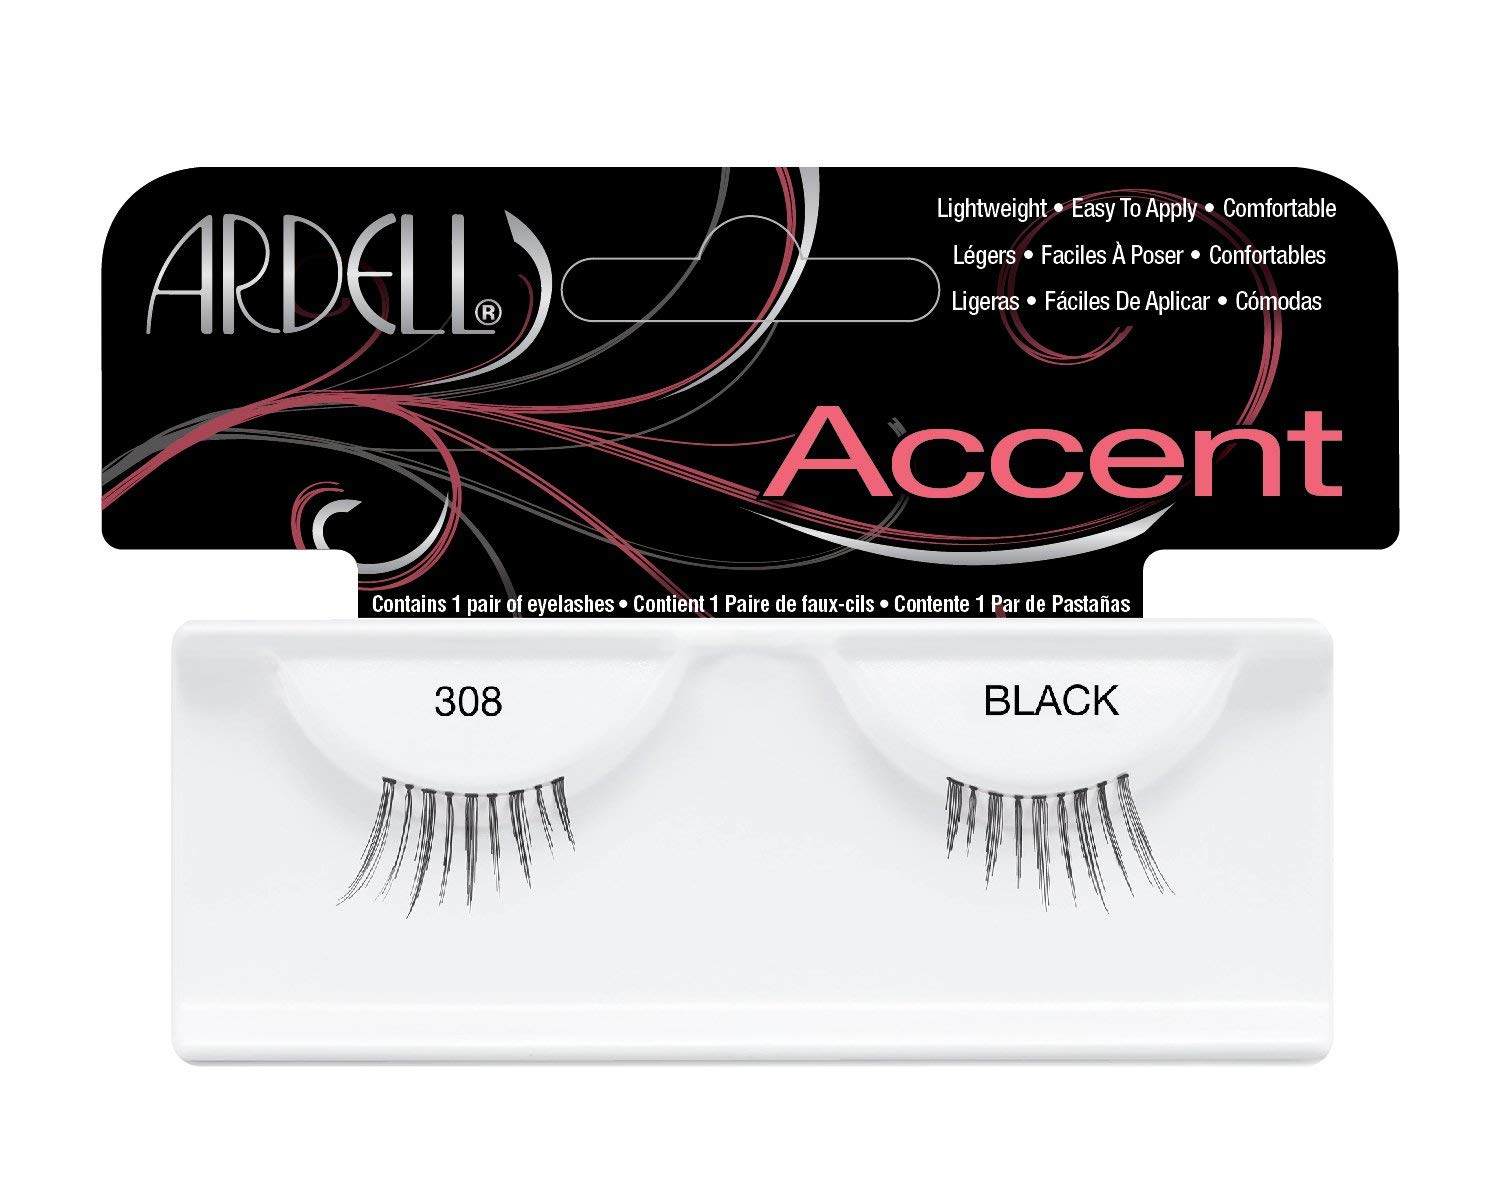 Ardell Accents Lashes 308